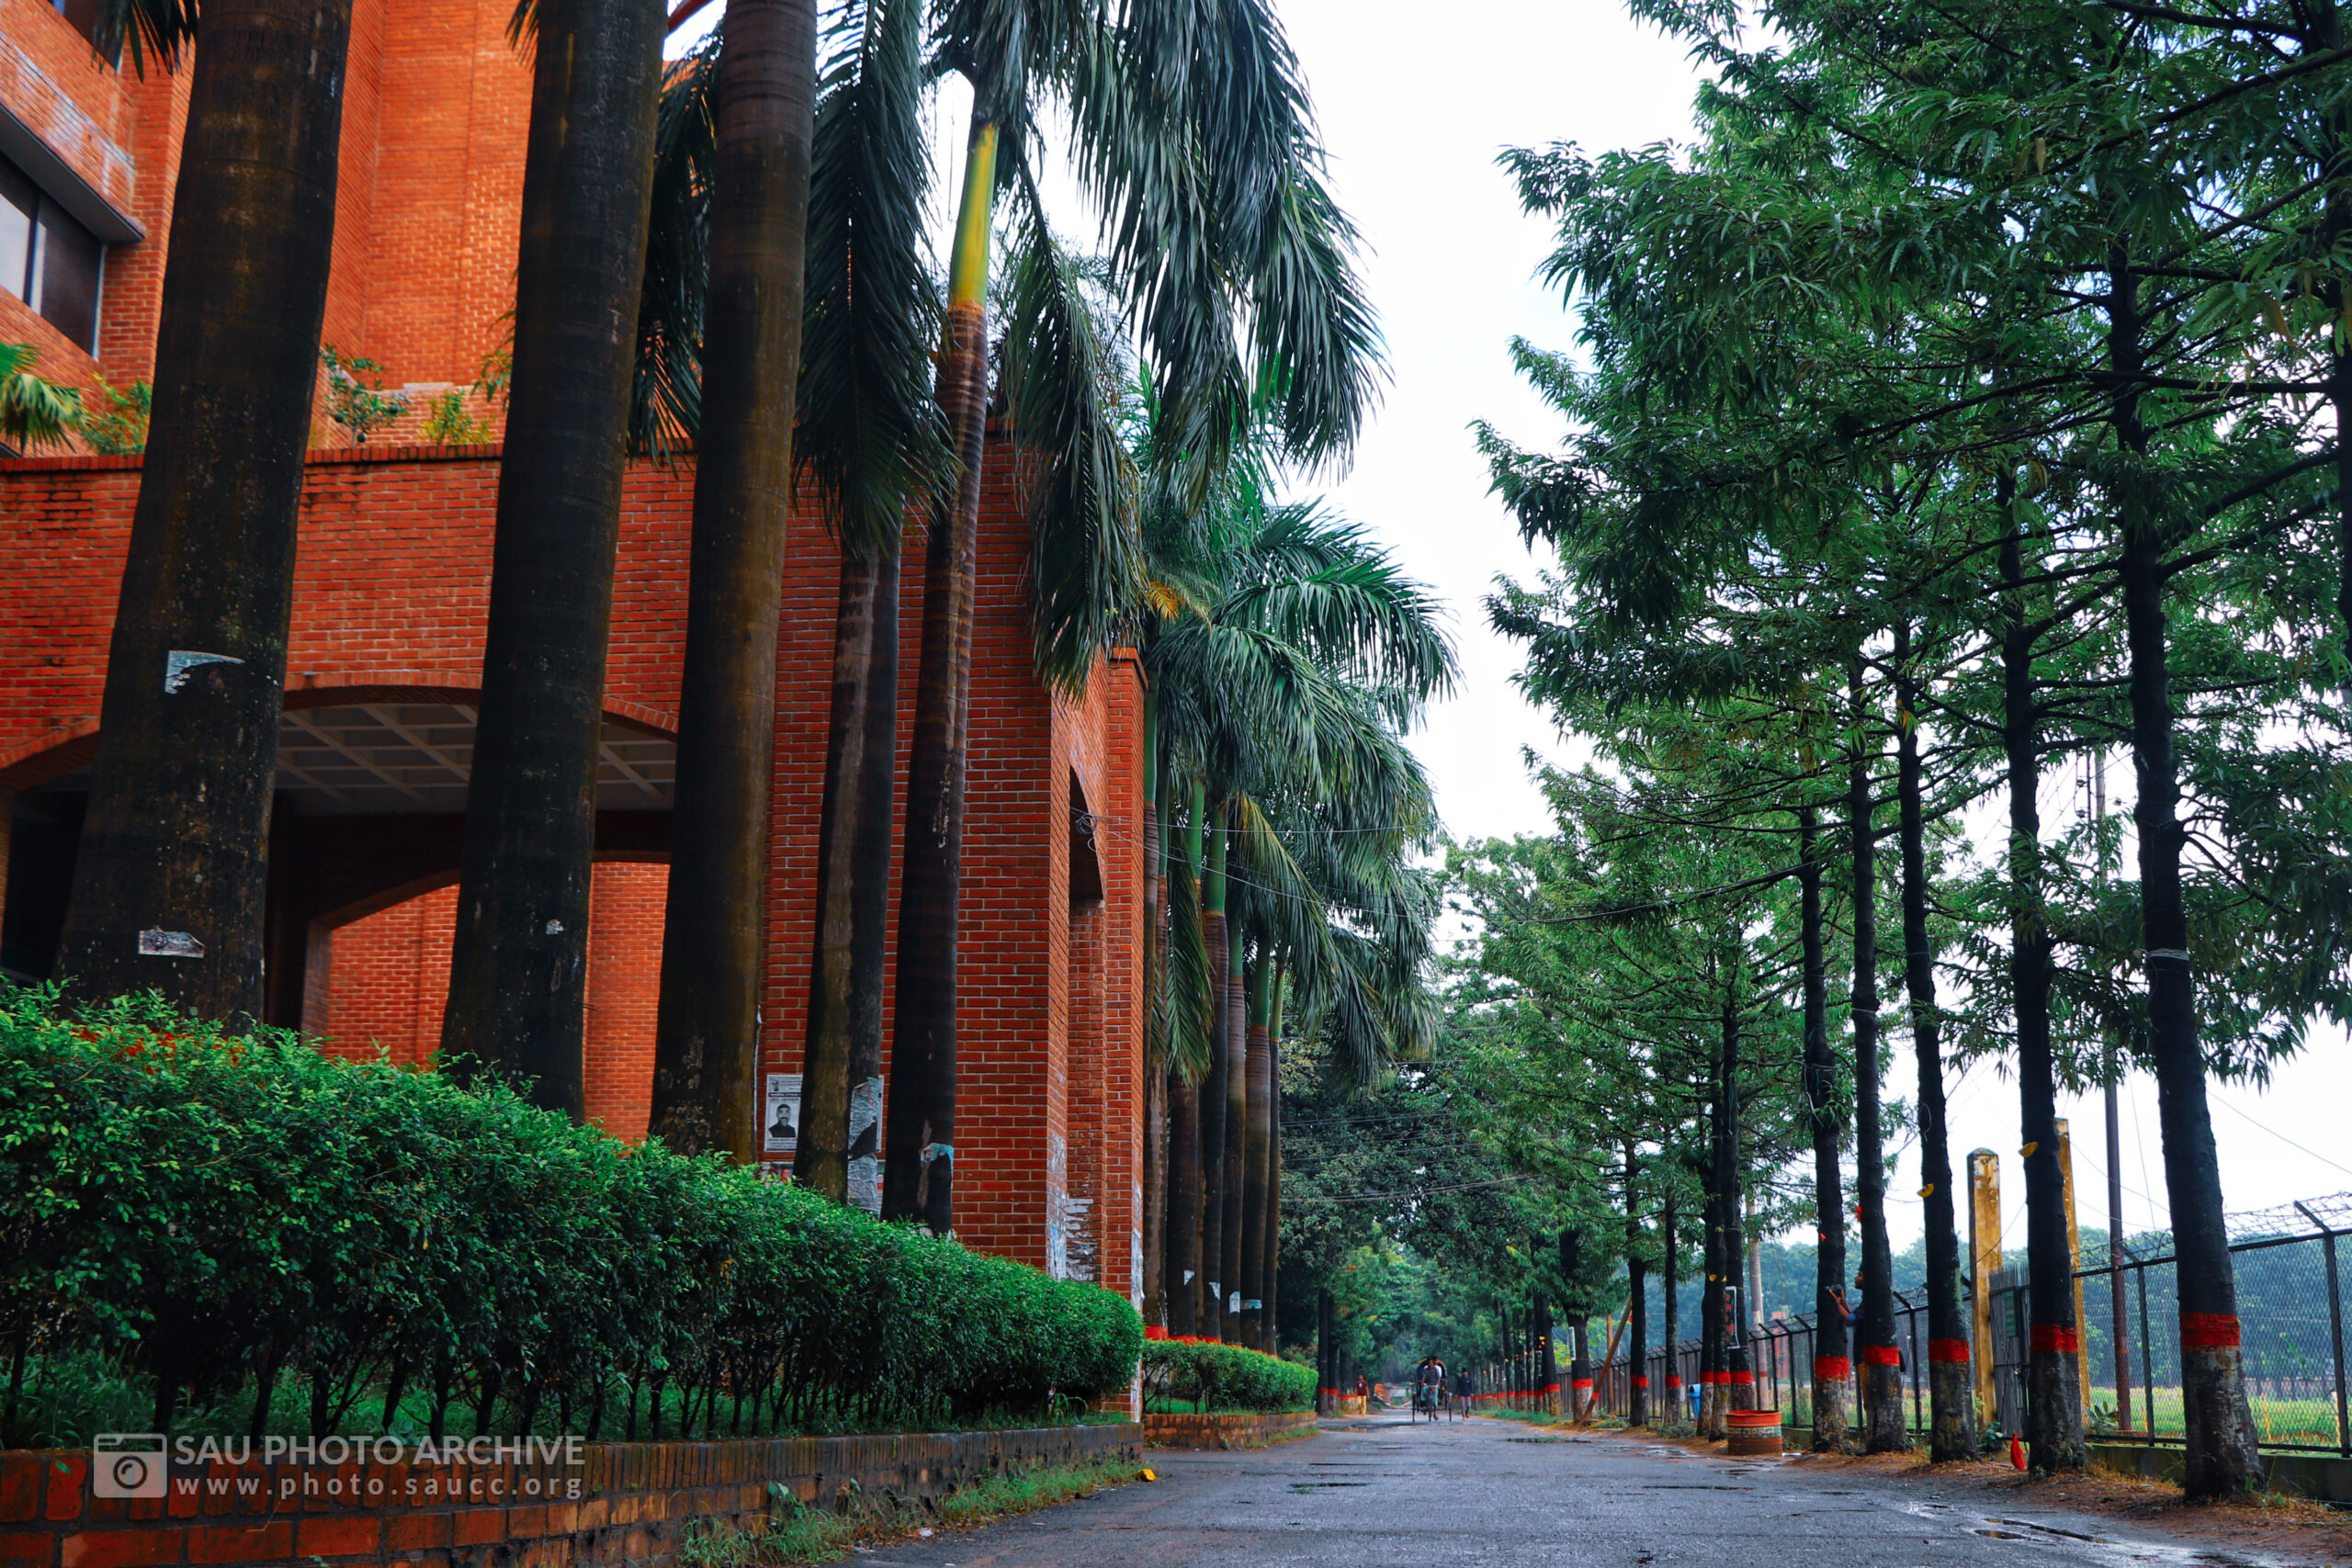 A Road photo is captured by Md. Nazmus Sakib Anik at Sher-e-Bangla Agricultural University titled Road in front of Administrative Building